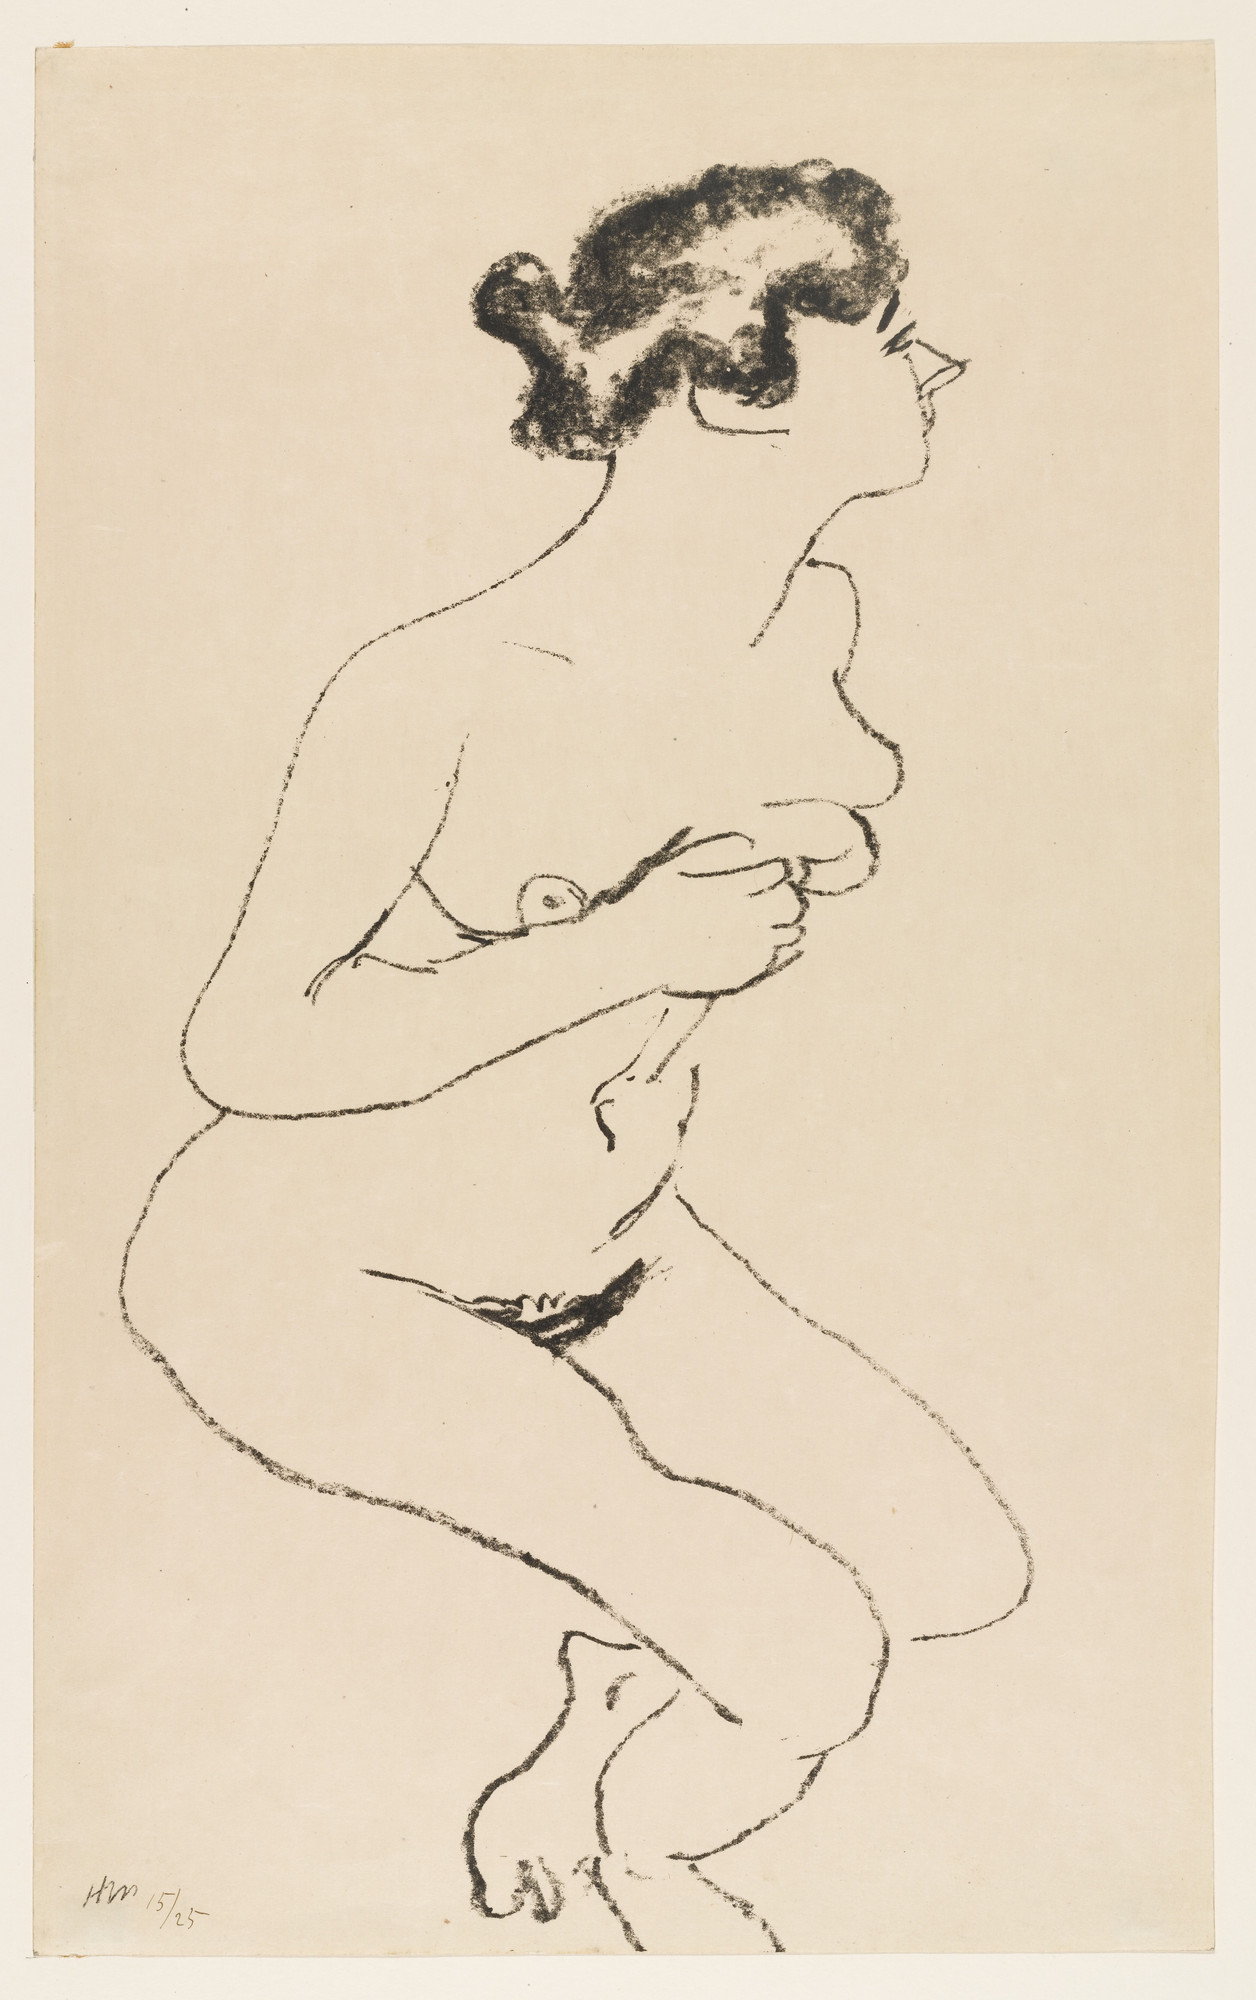 Henri Matisse. Crouching Nude in Profile with Black Hair (Nu accroupi, profil à la chevelure noire). 1906